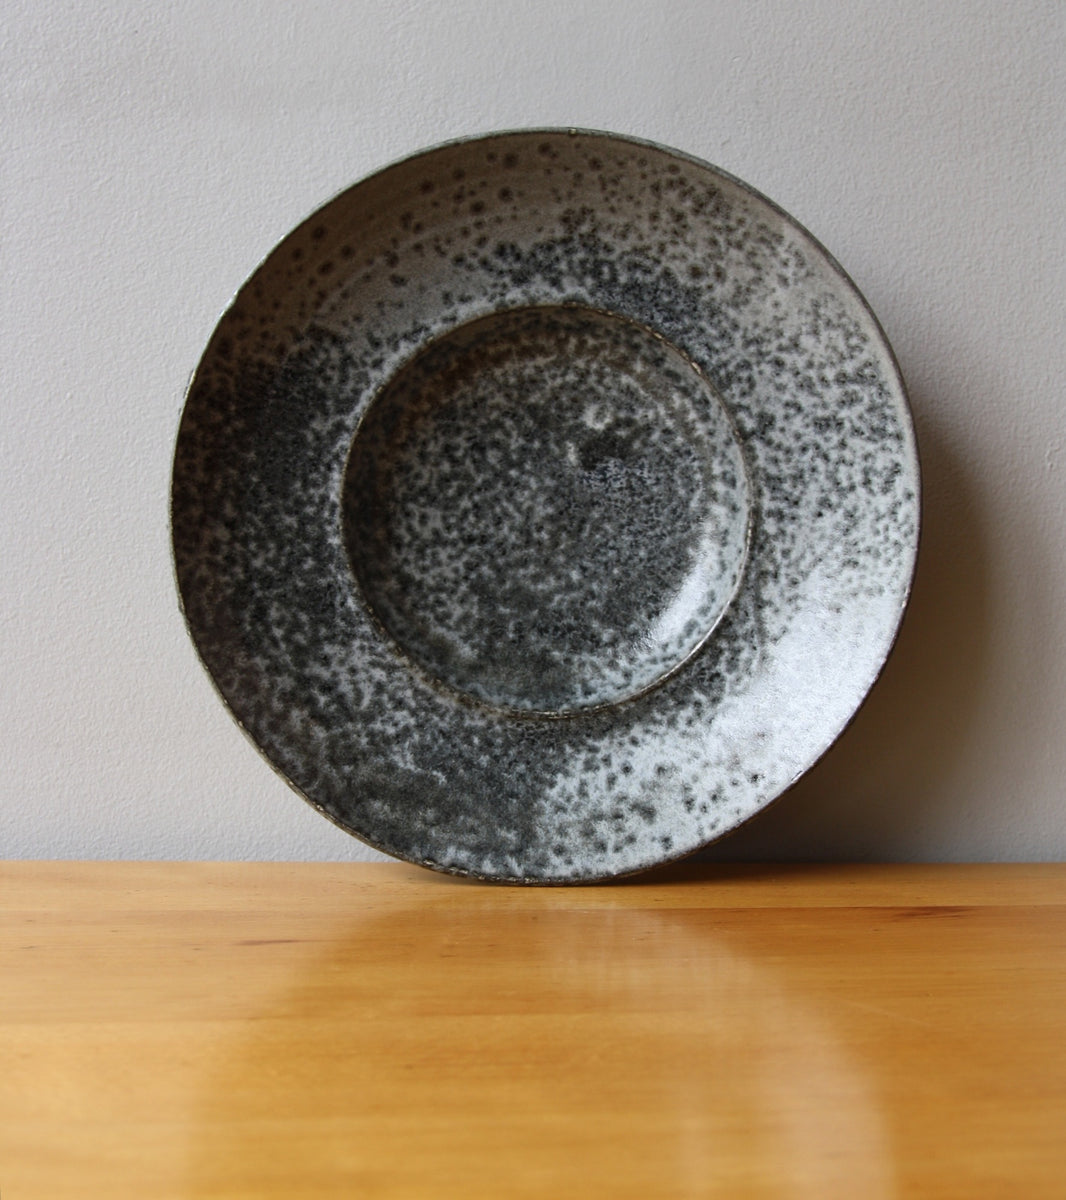 Large Flat Out Bowl 11Grey Glaze Kasper Würtz - Image 5